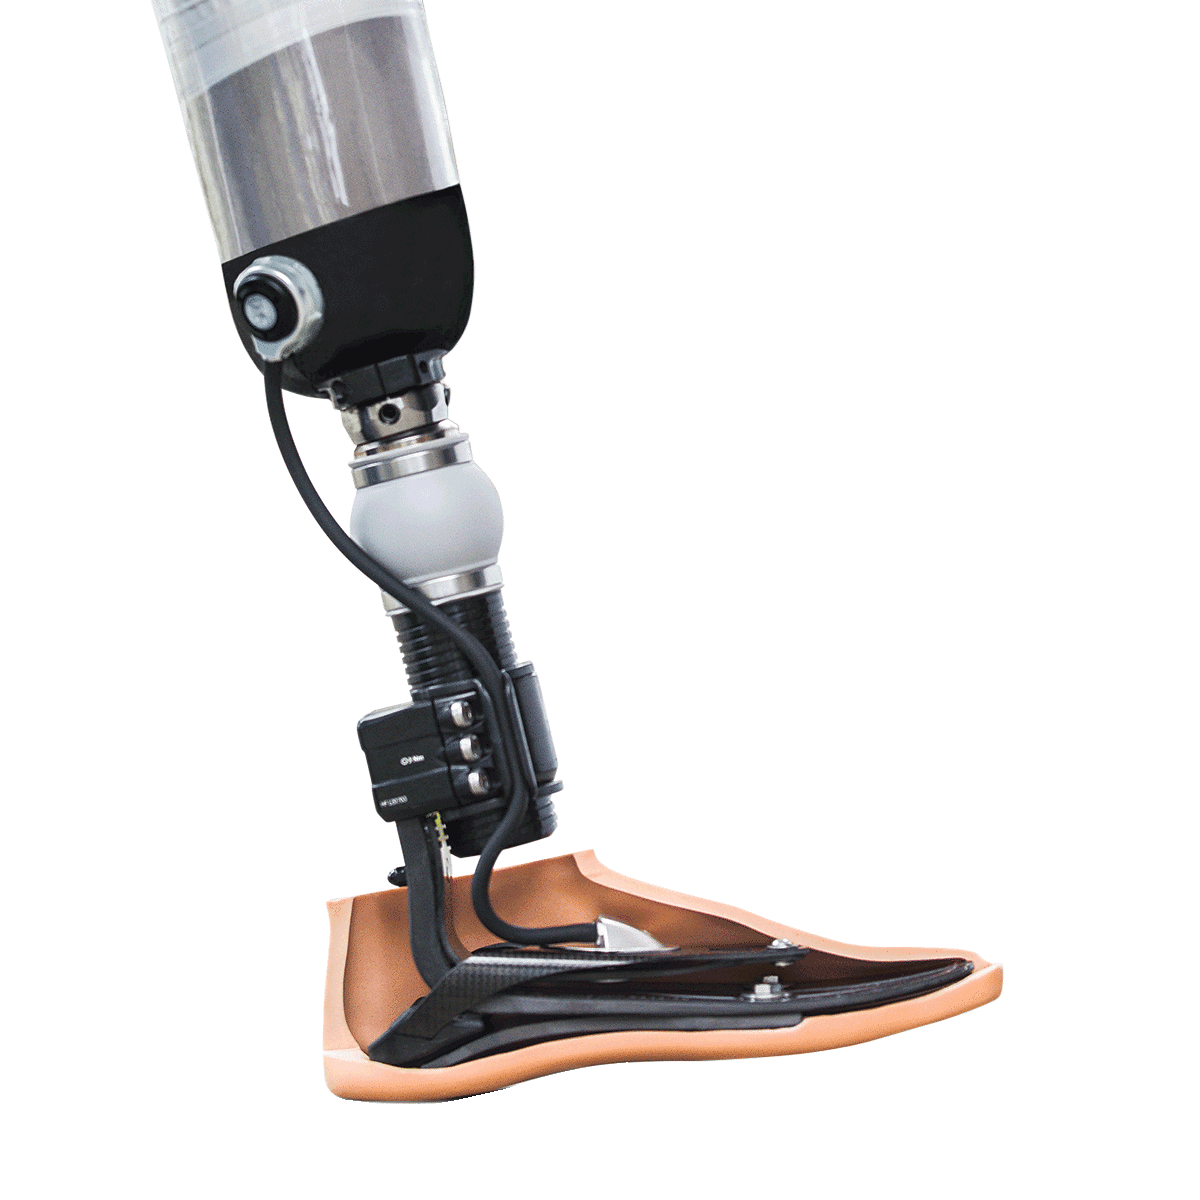 Technology Anderson Prosthetics